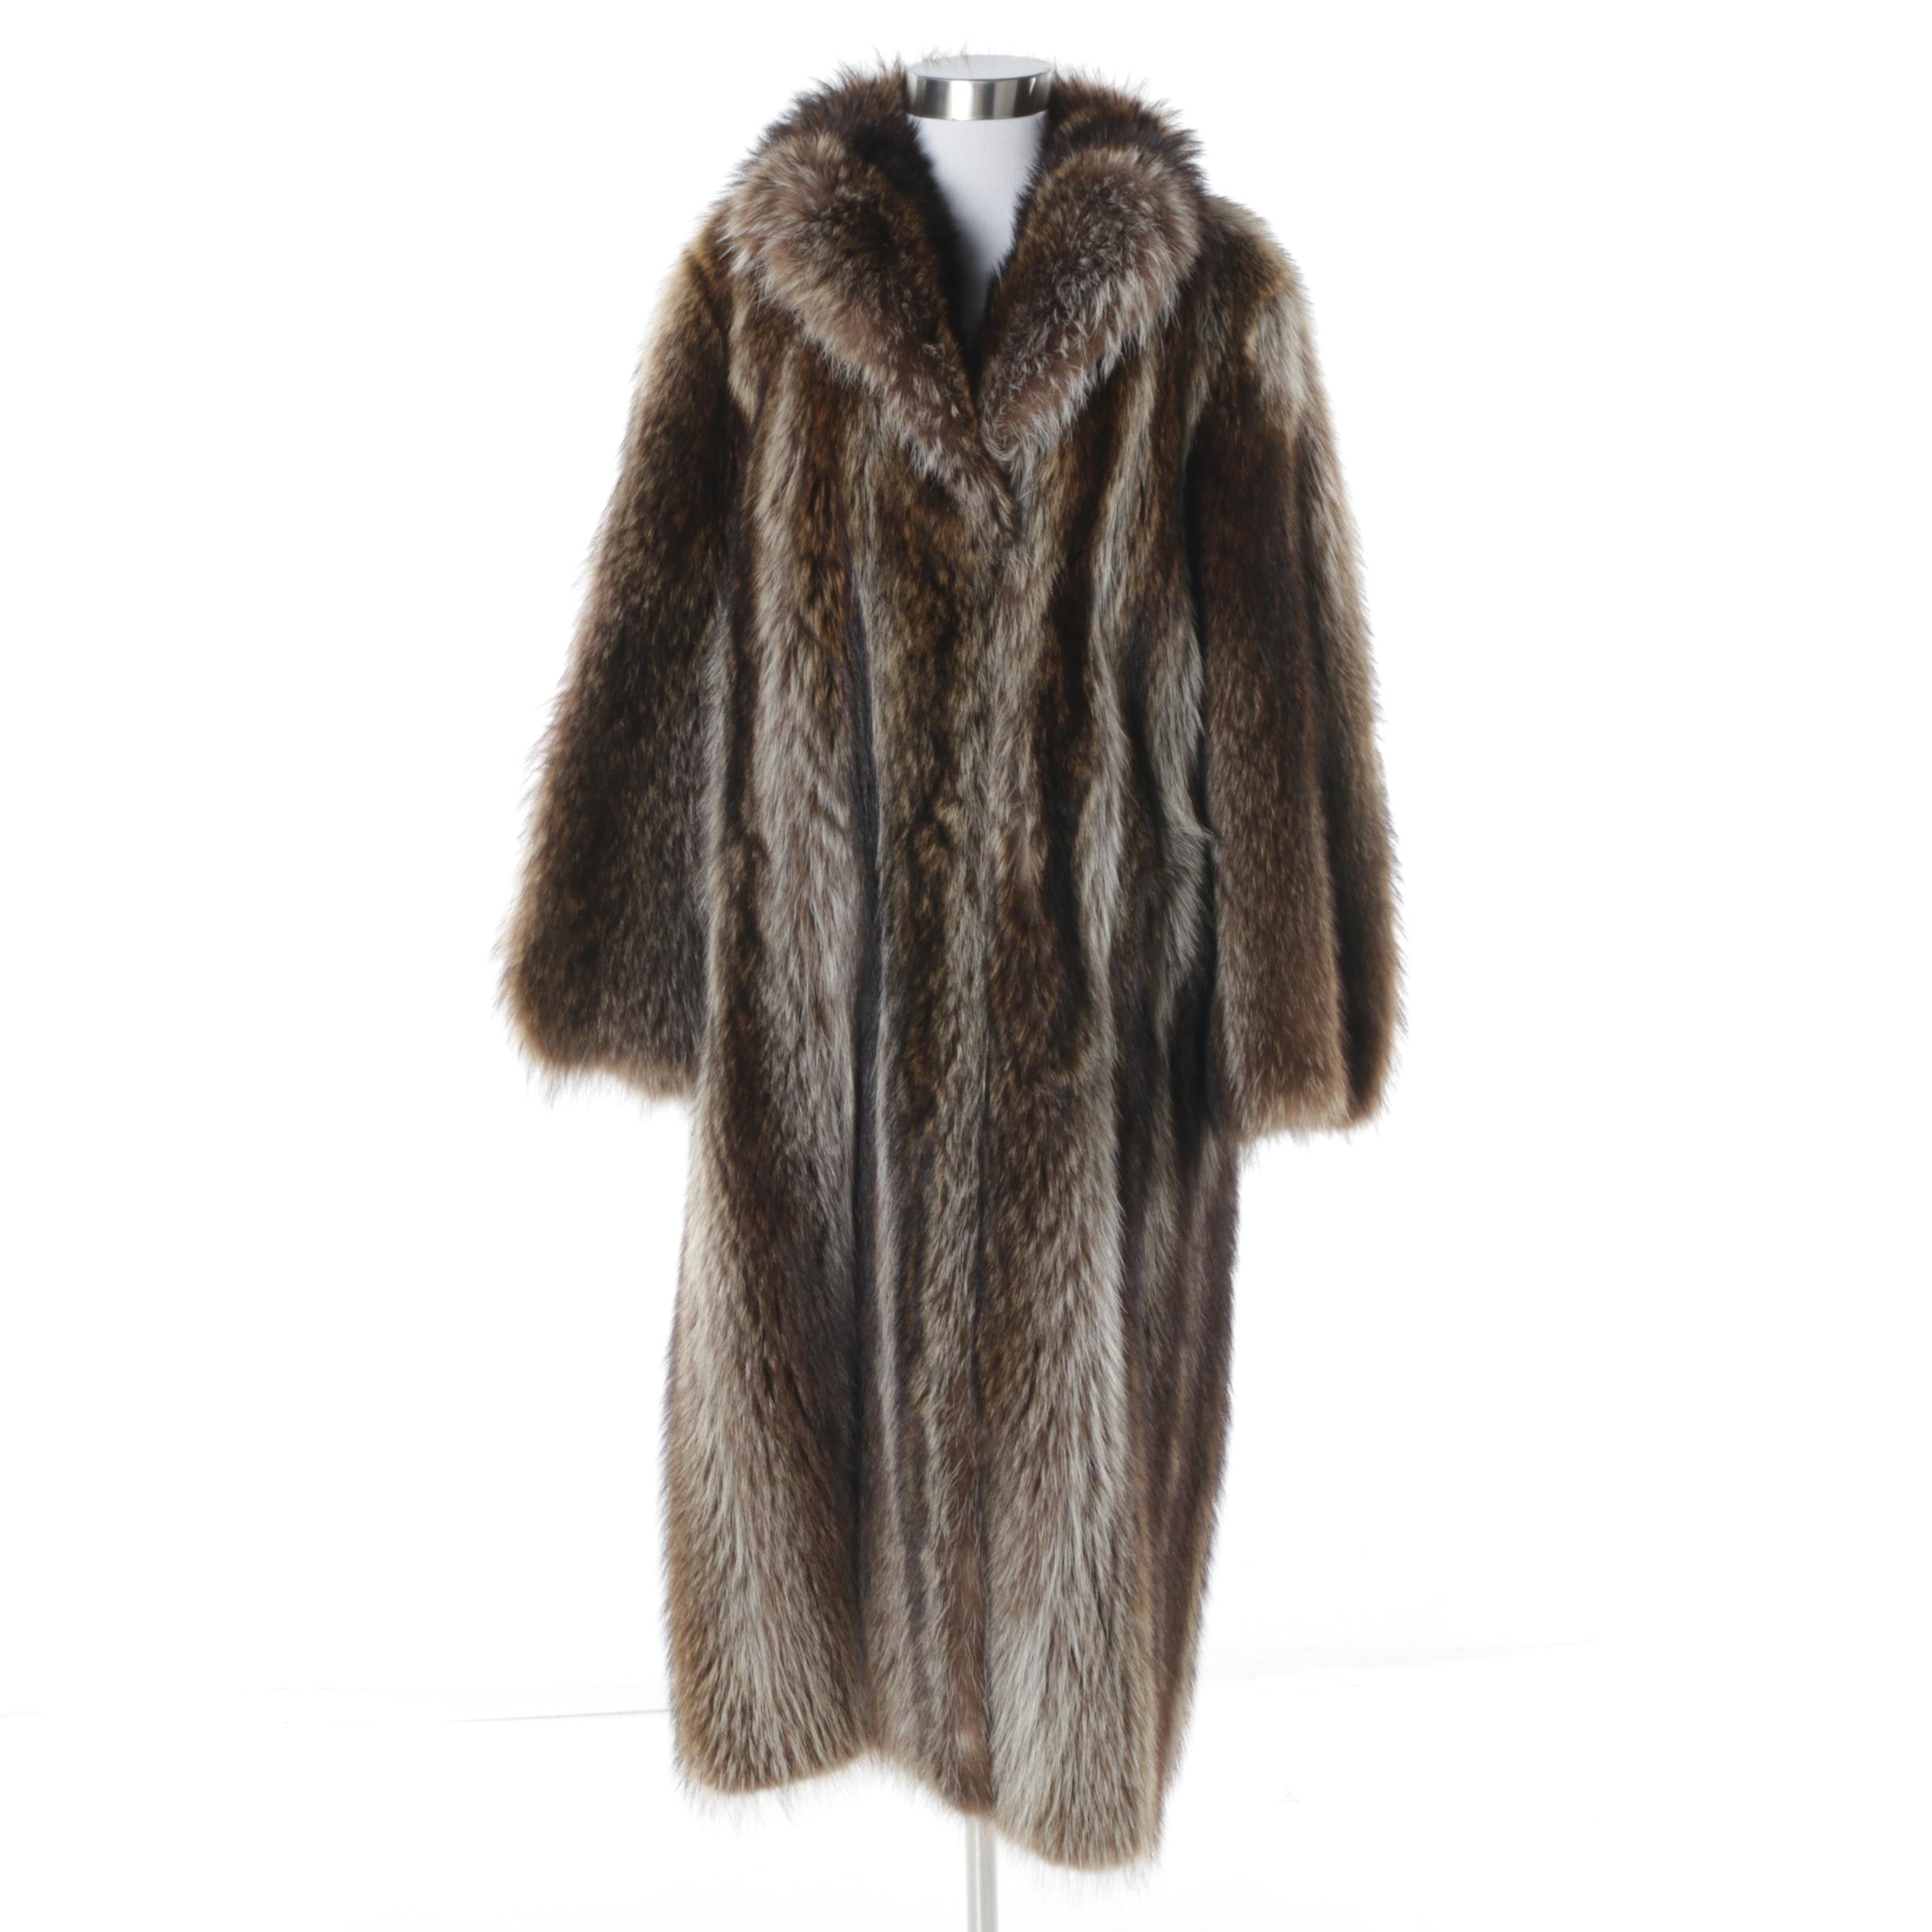 Alexandor's Furs of Montreal Raccoon Fur Coat